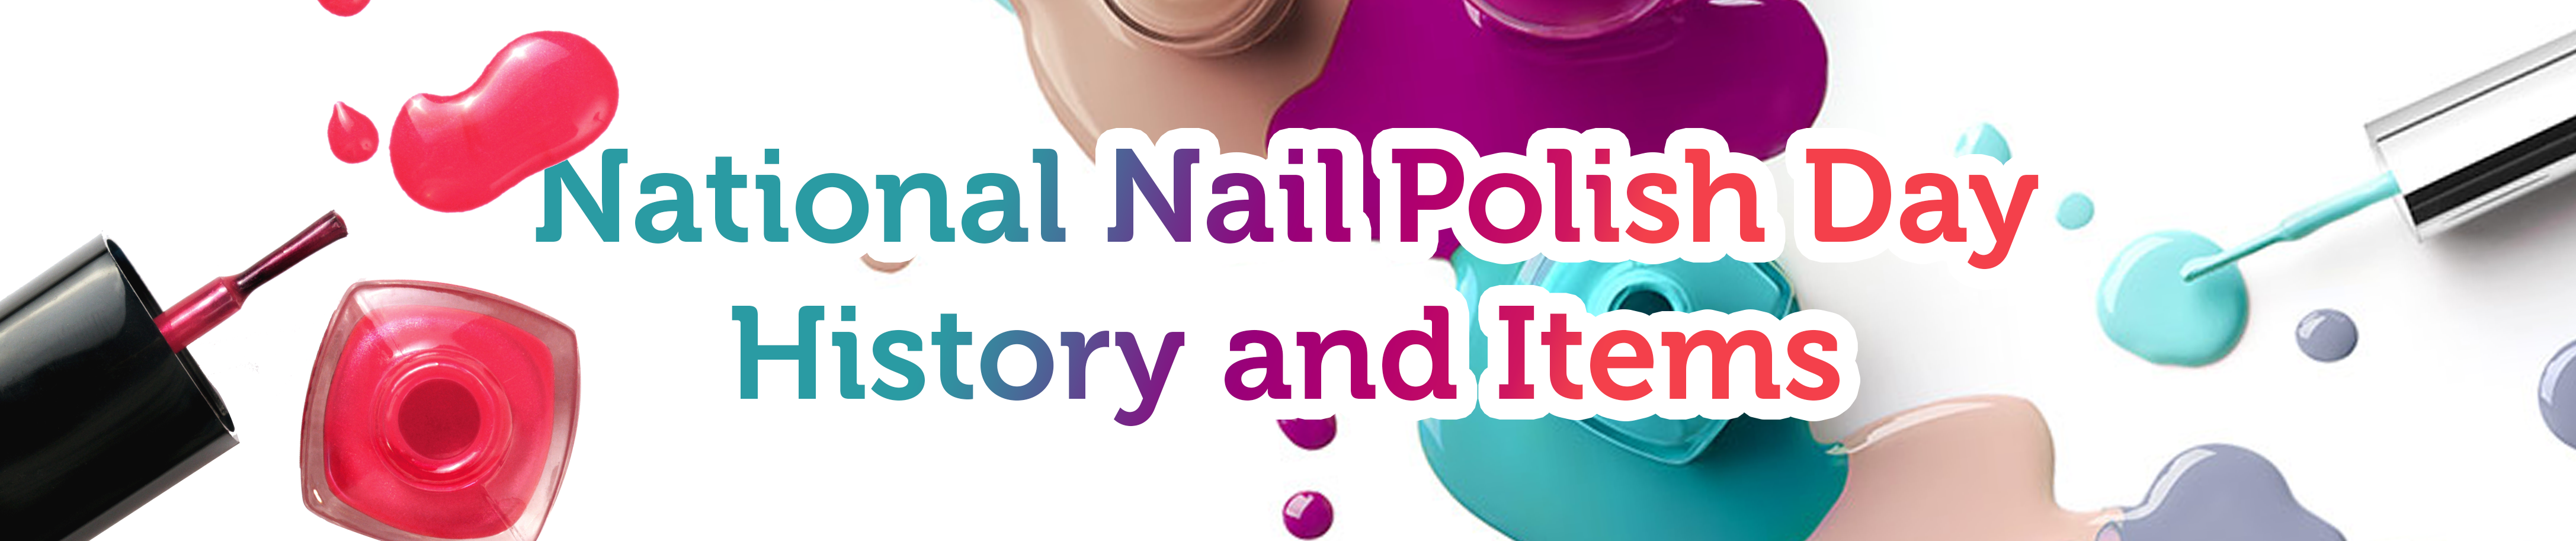 National Nail Polish Day 2018